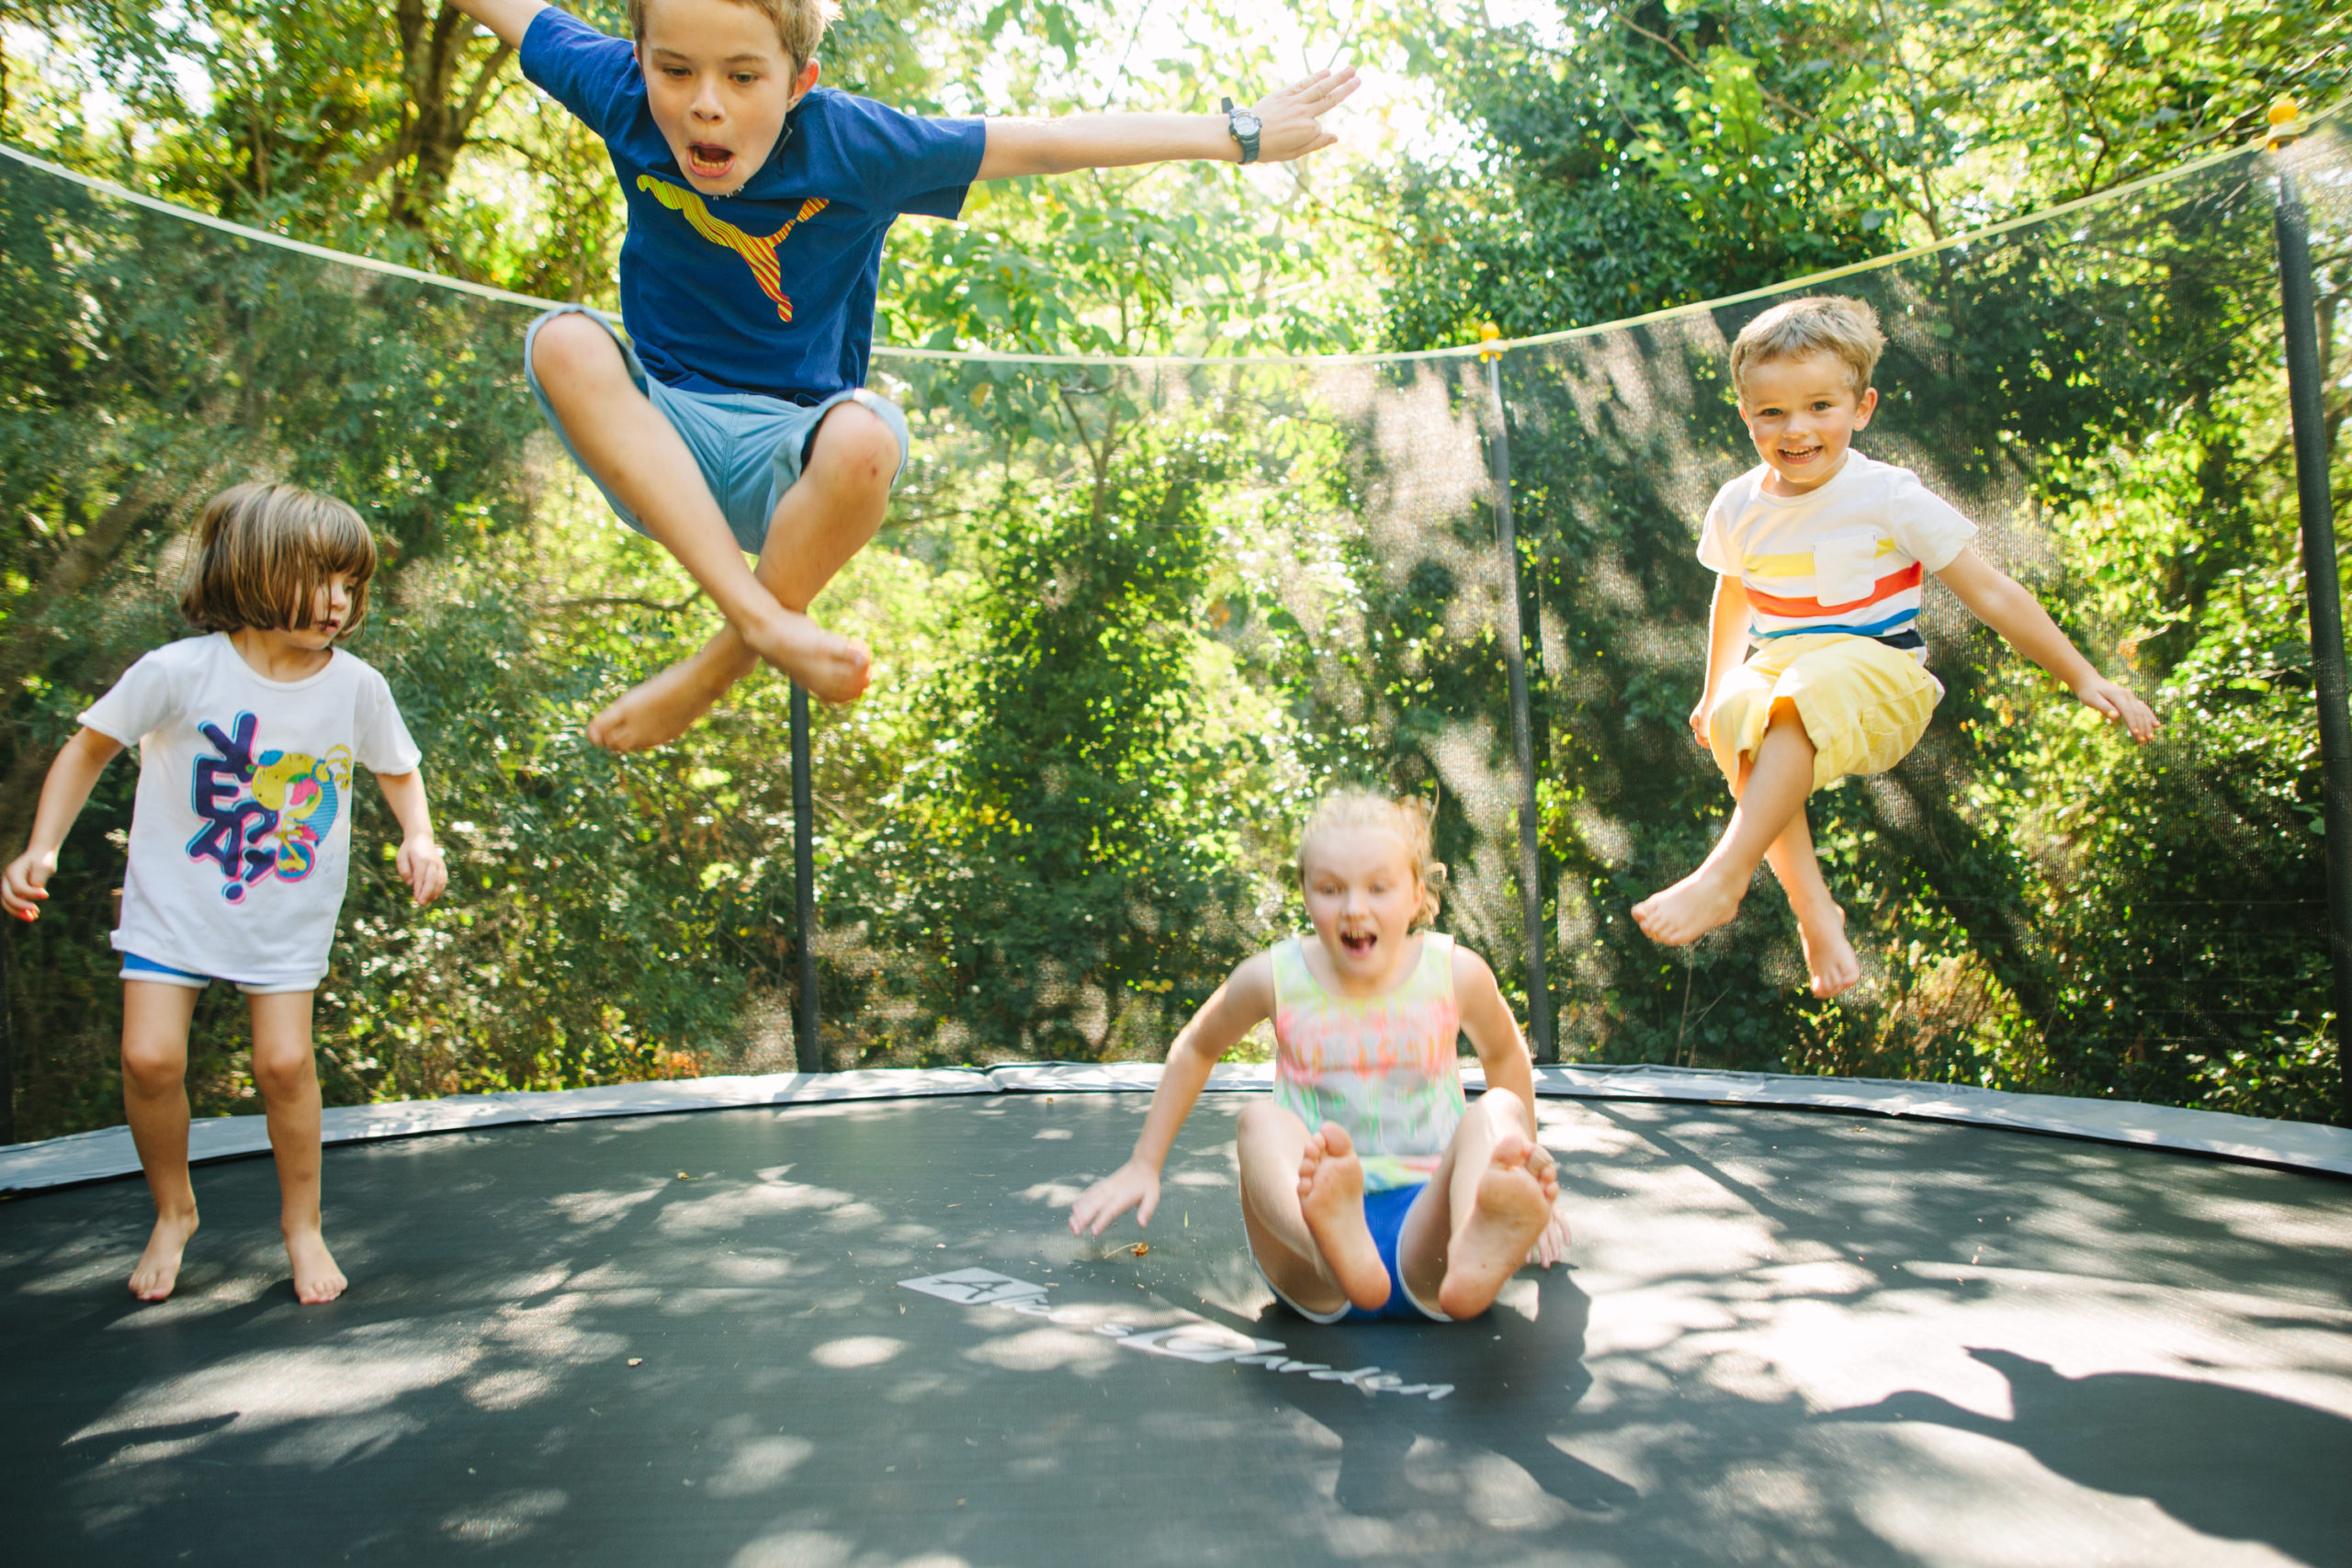 Kids jumping on a trampoline, south of France weekend break, Country kids